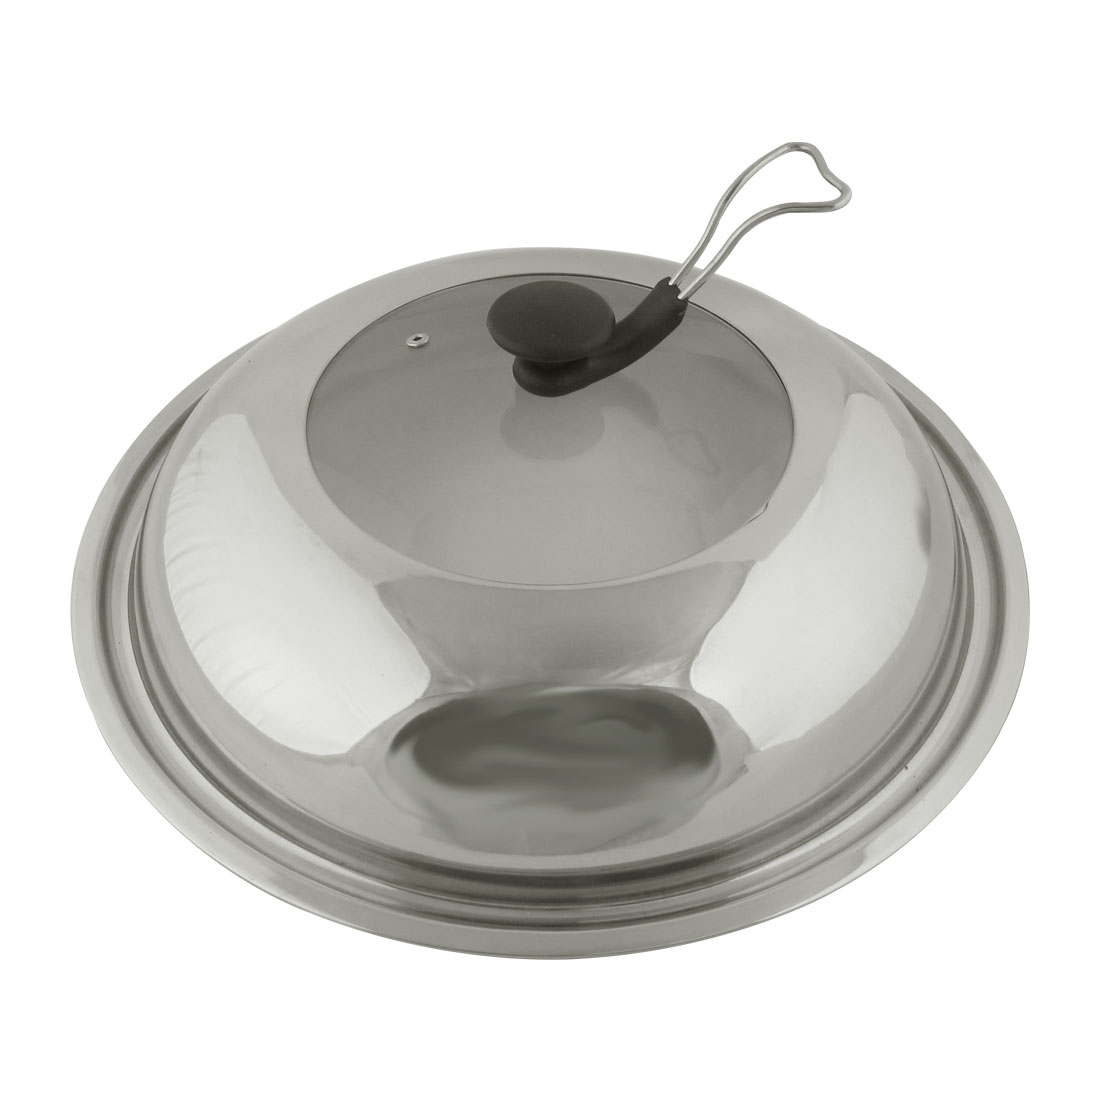 Unique Bargains Restaurant Stainless Steel Kitchenware Cooker Pot Frying Pan Lid Cover 40cm Dia